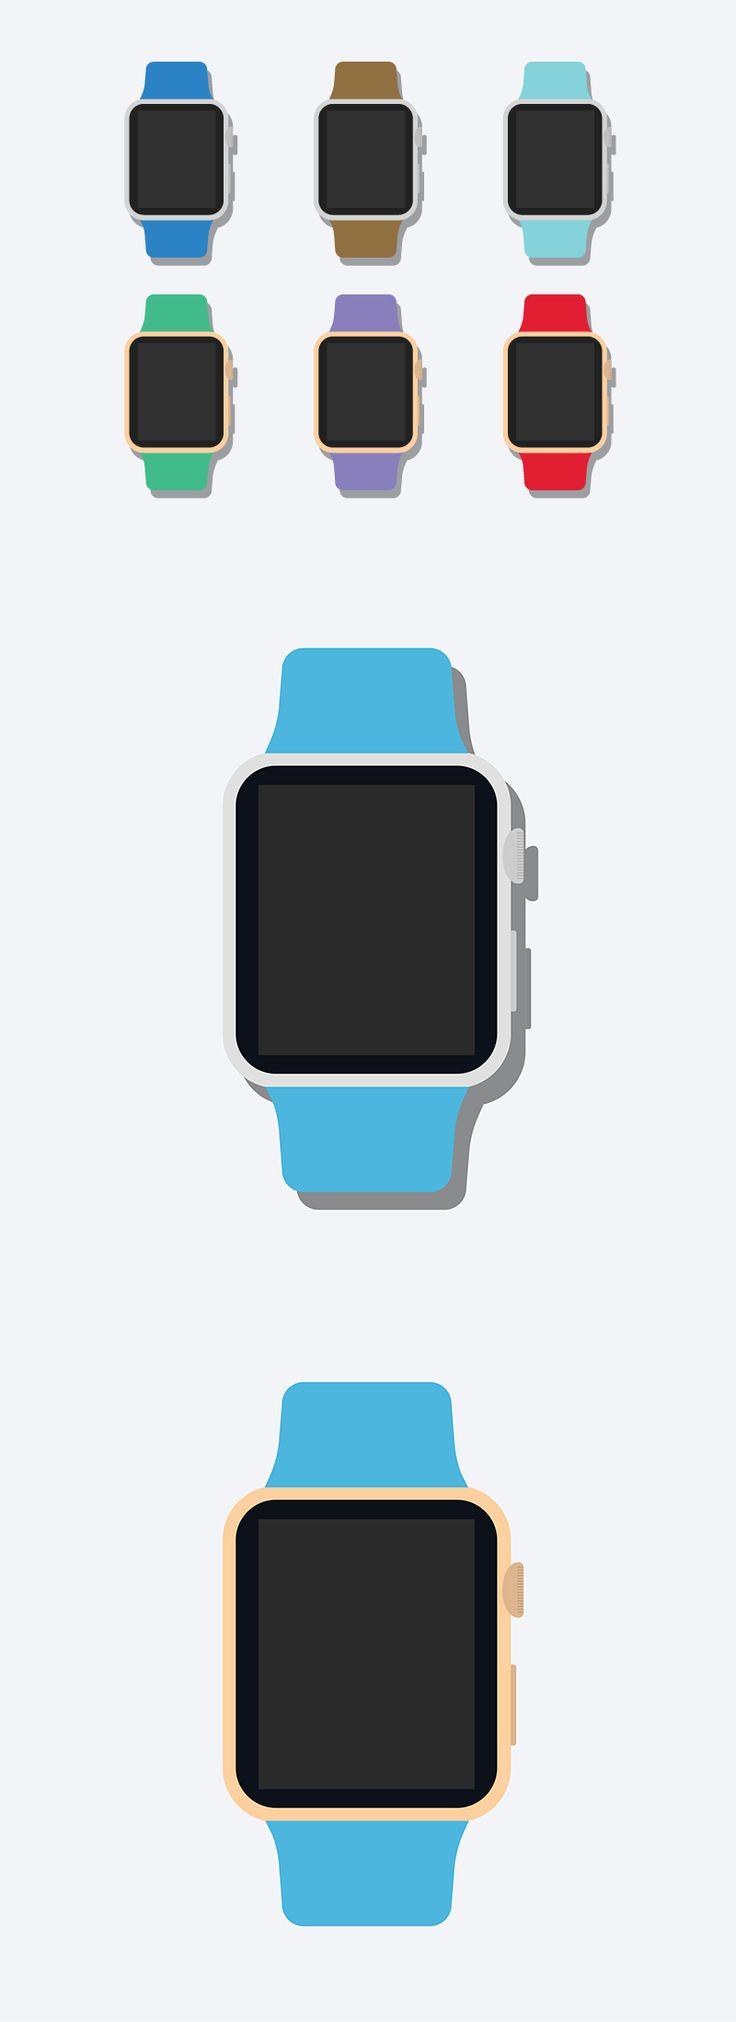 Today's freebie is a Flat 2D Apple Watch Mockup designed by Anthony Boyd. This mockup features a Flat Apple Watch with editable band colors. Also The frames are switchable between gold and silver. Free for personal and commercial use.